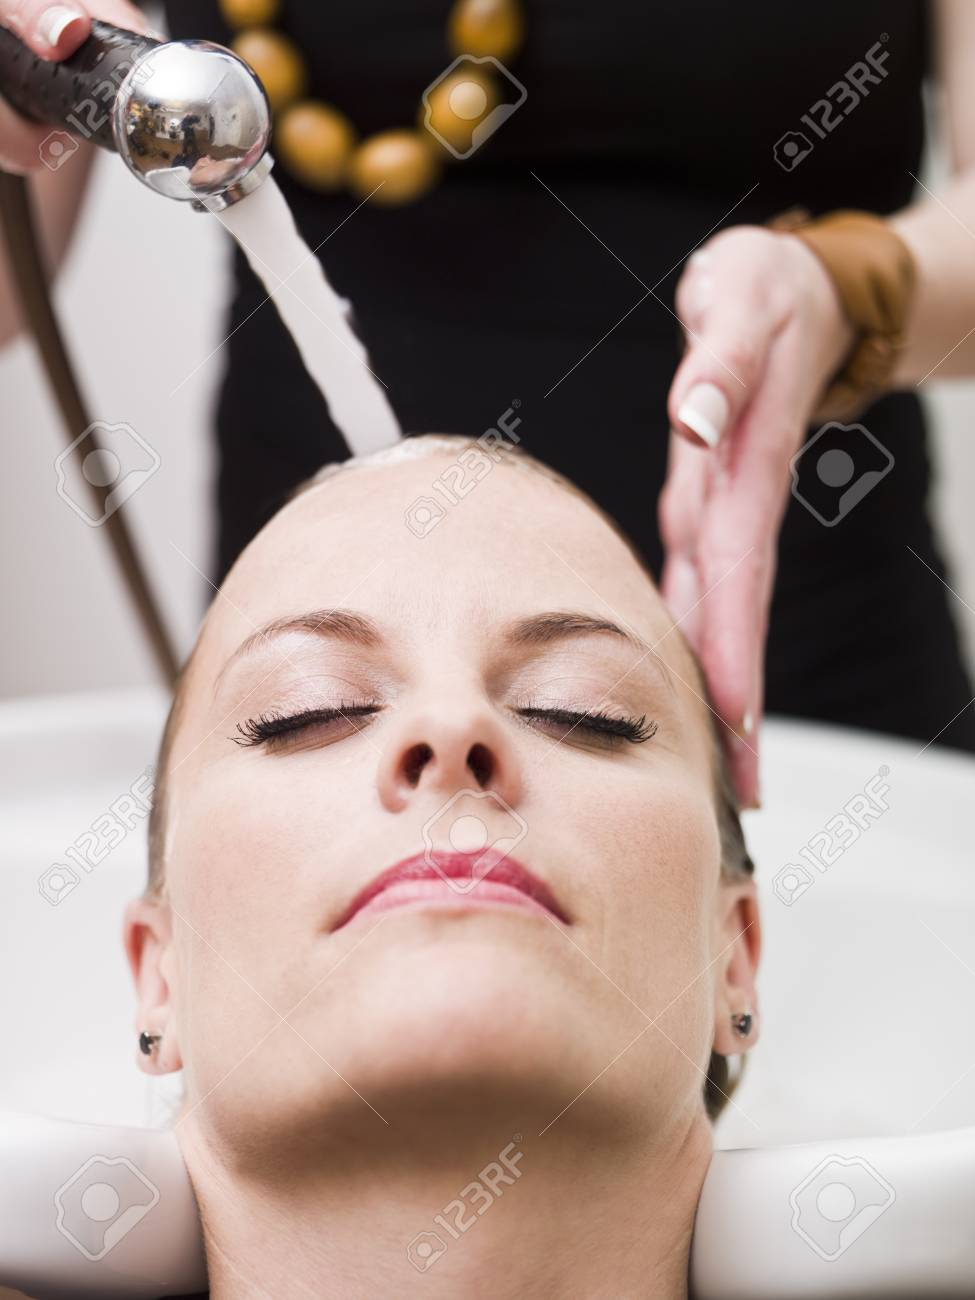 Relaxing at the Beauty Spa Stock Photo - 9287660